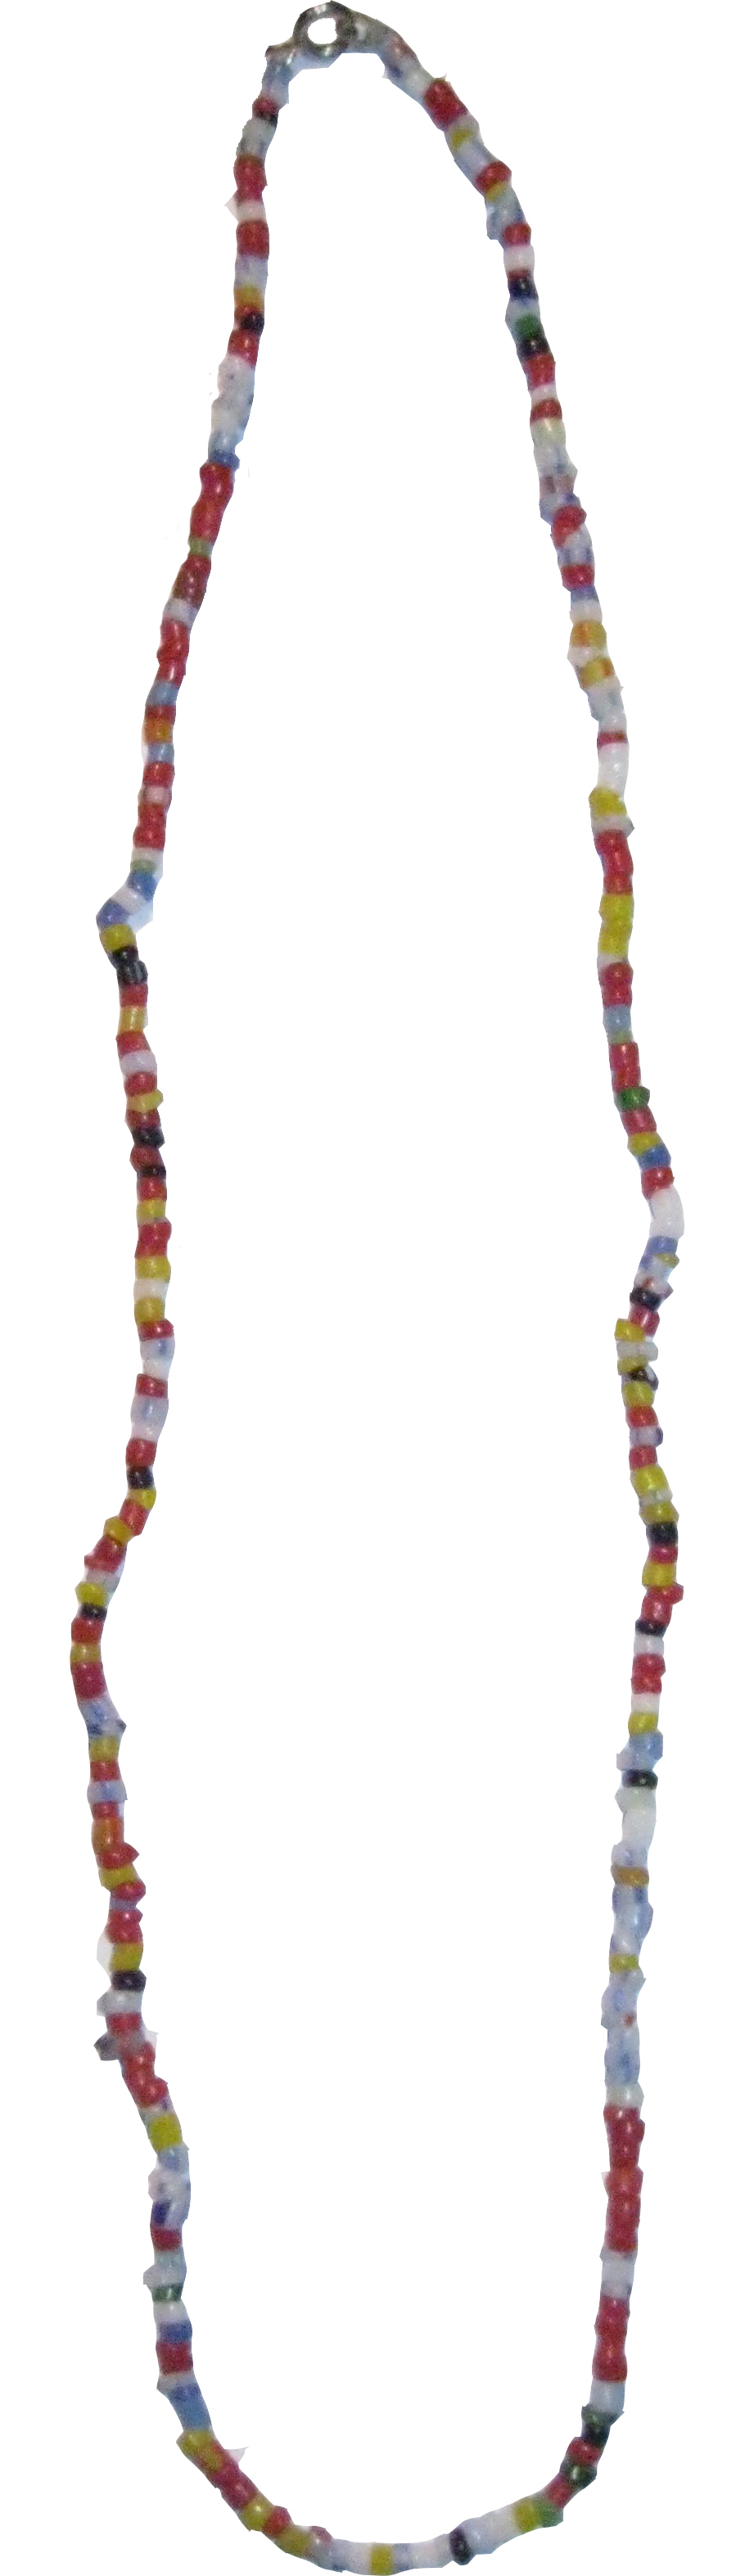 "Seed Bead Necklace 18"" 100 pack CLOSEOUT SPECIAL"